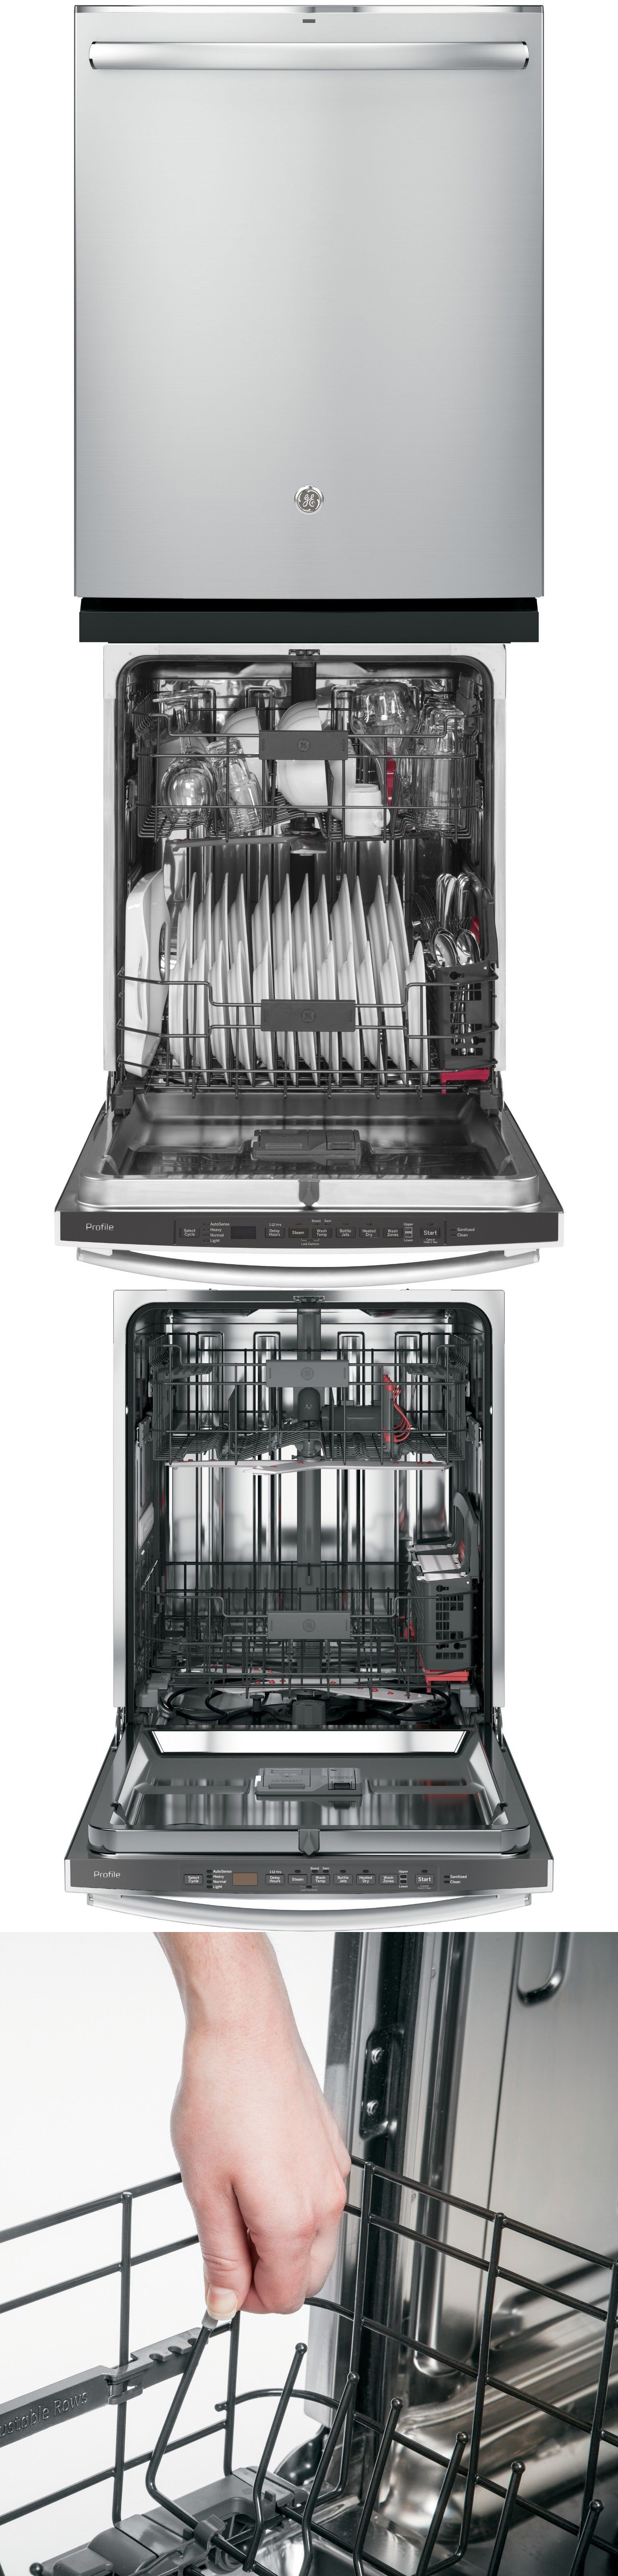 Dishwashers 116023 Ge Pdt825ssjss Profile Stainless Steel Interior Dishwasher With Hidden Controls Buy It Now On Built In Dishwasher Steel Stainless Steel